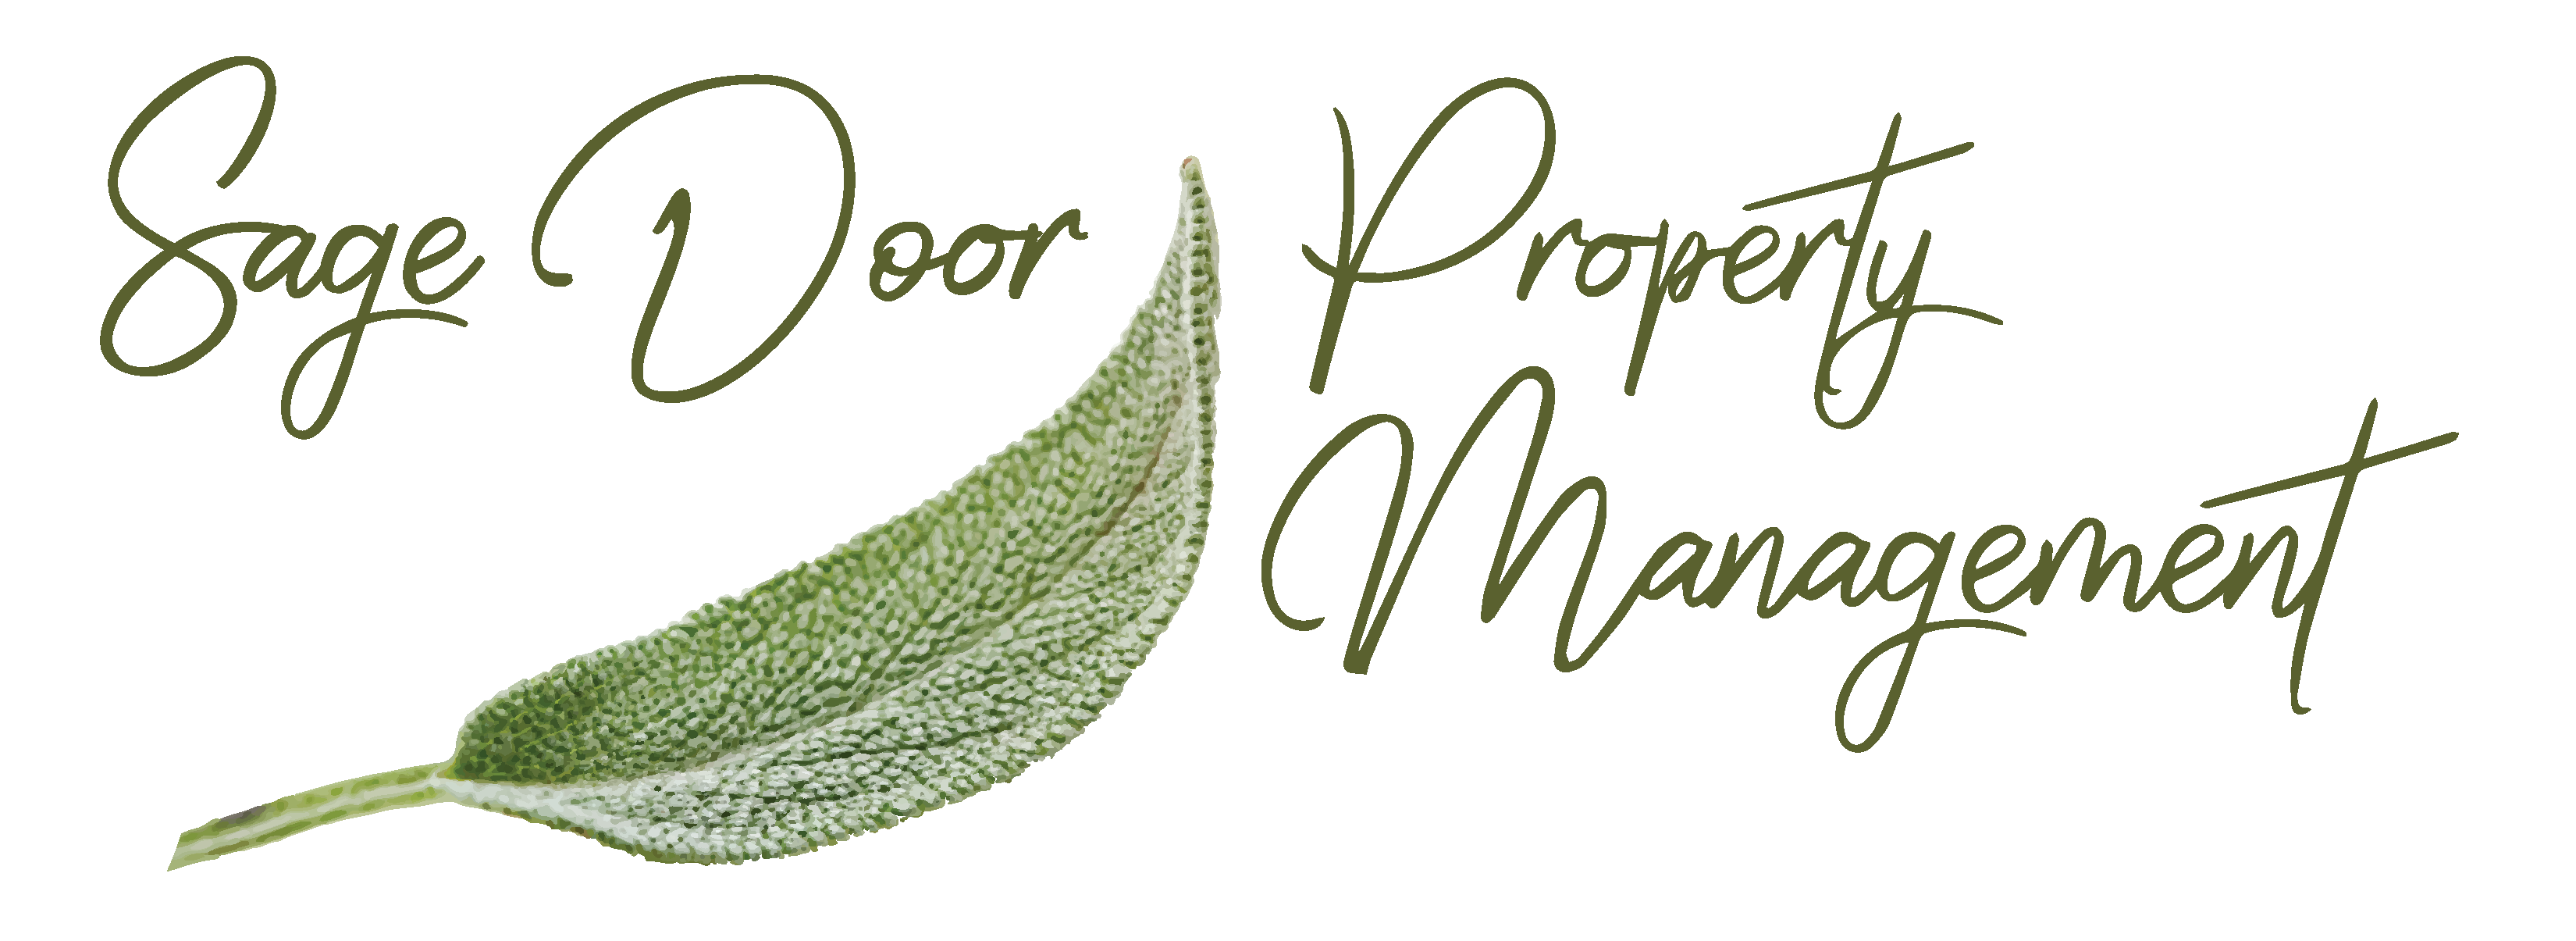 Sage Door Property Management